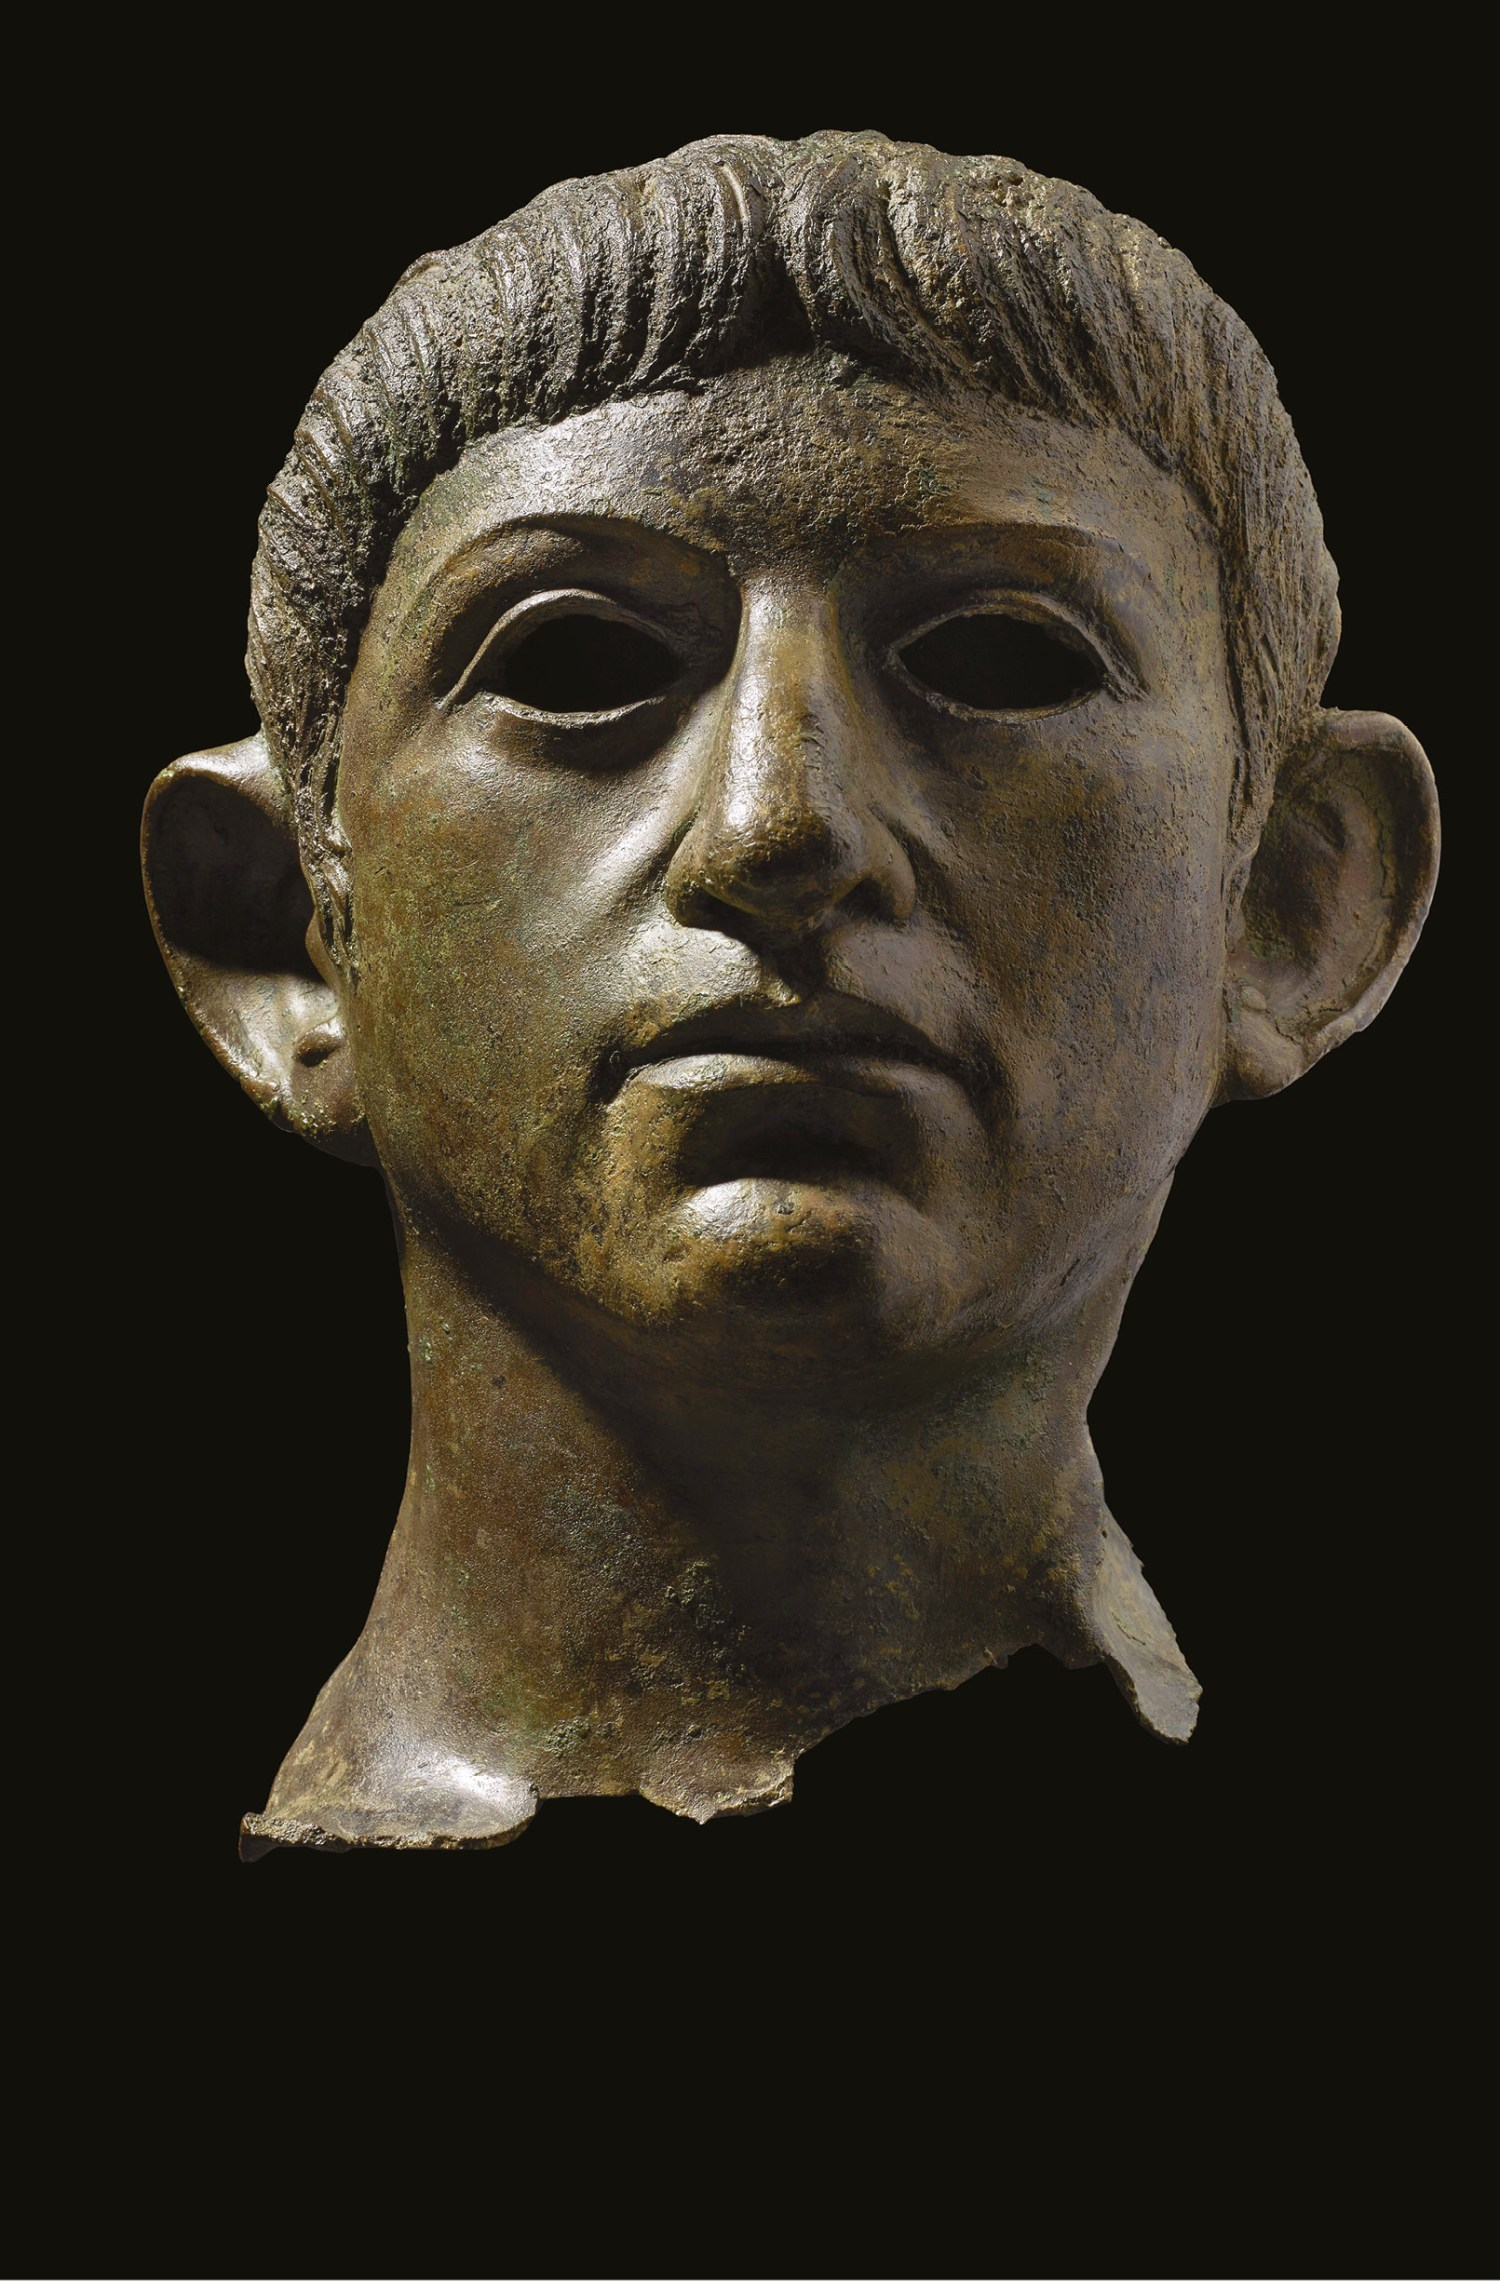 left This bronze head, with its distinctive close-cropped fringe and prominent ears, is thought to depict the emperor Nero. It had been torn from a larger statue and deposited in the River Alde possibly by Iceni rebels who rose against the emperor in AD 60/61. The head currently forms part of a new British Museum exhibition exploring the life and times of the emperor.